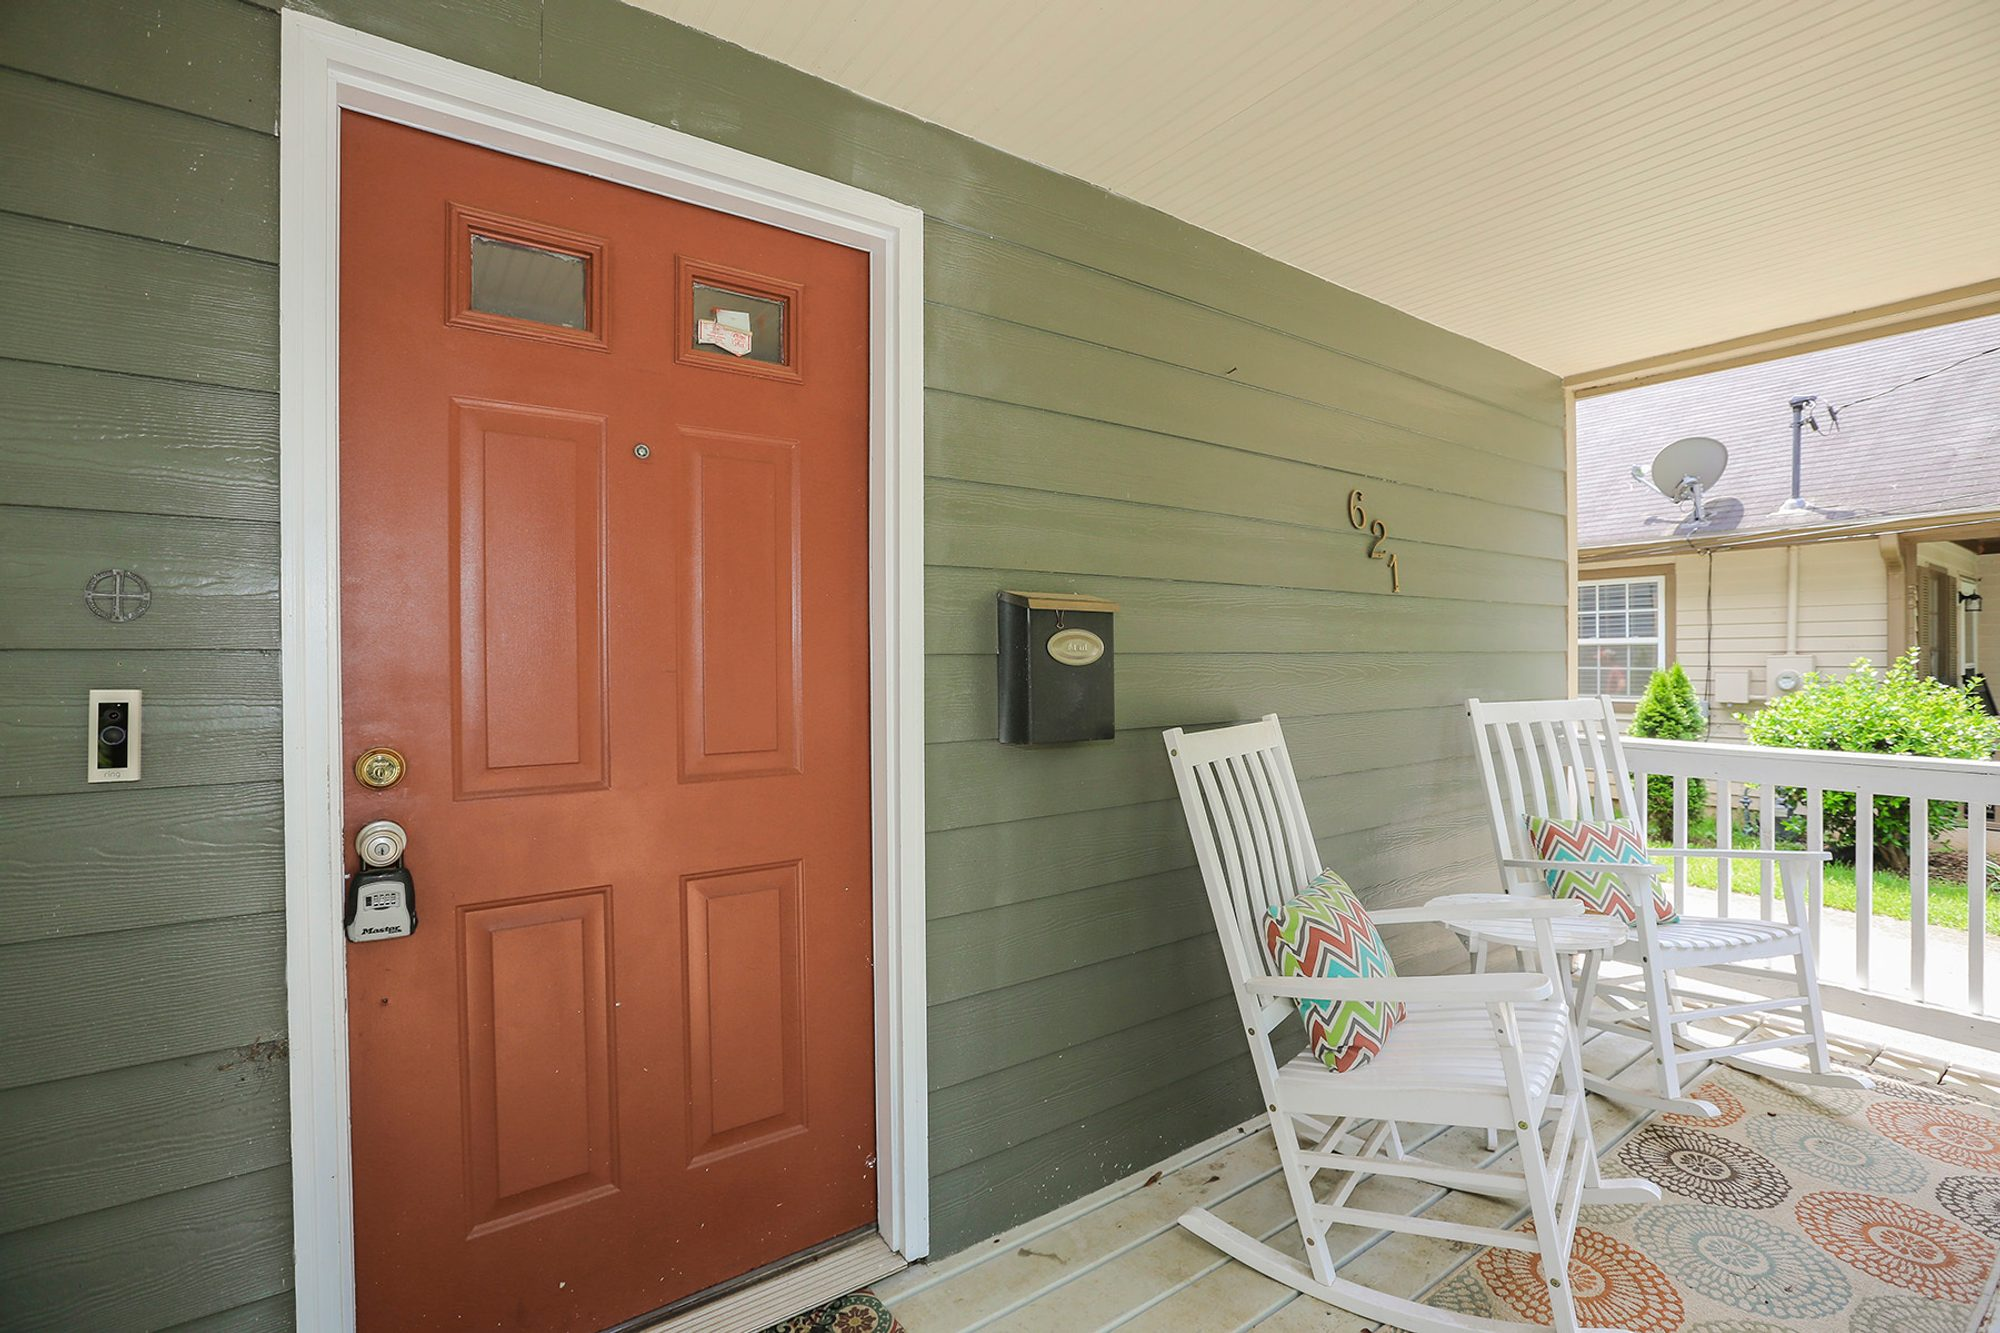 simple covered front porch orange front door green siding white rocking chairs